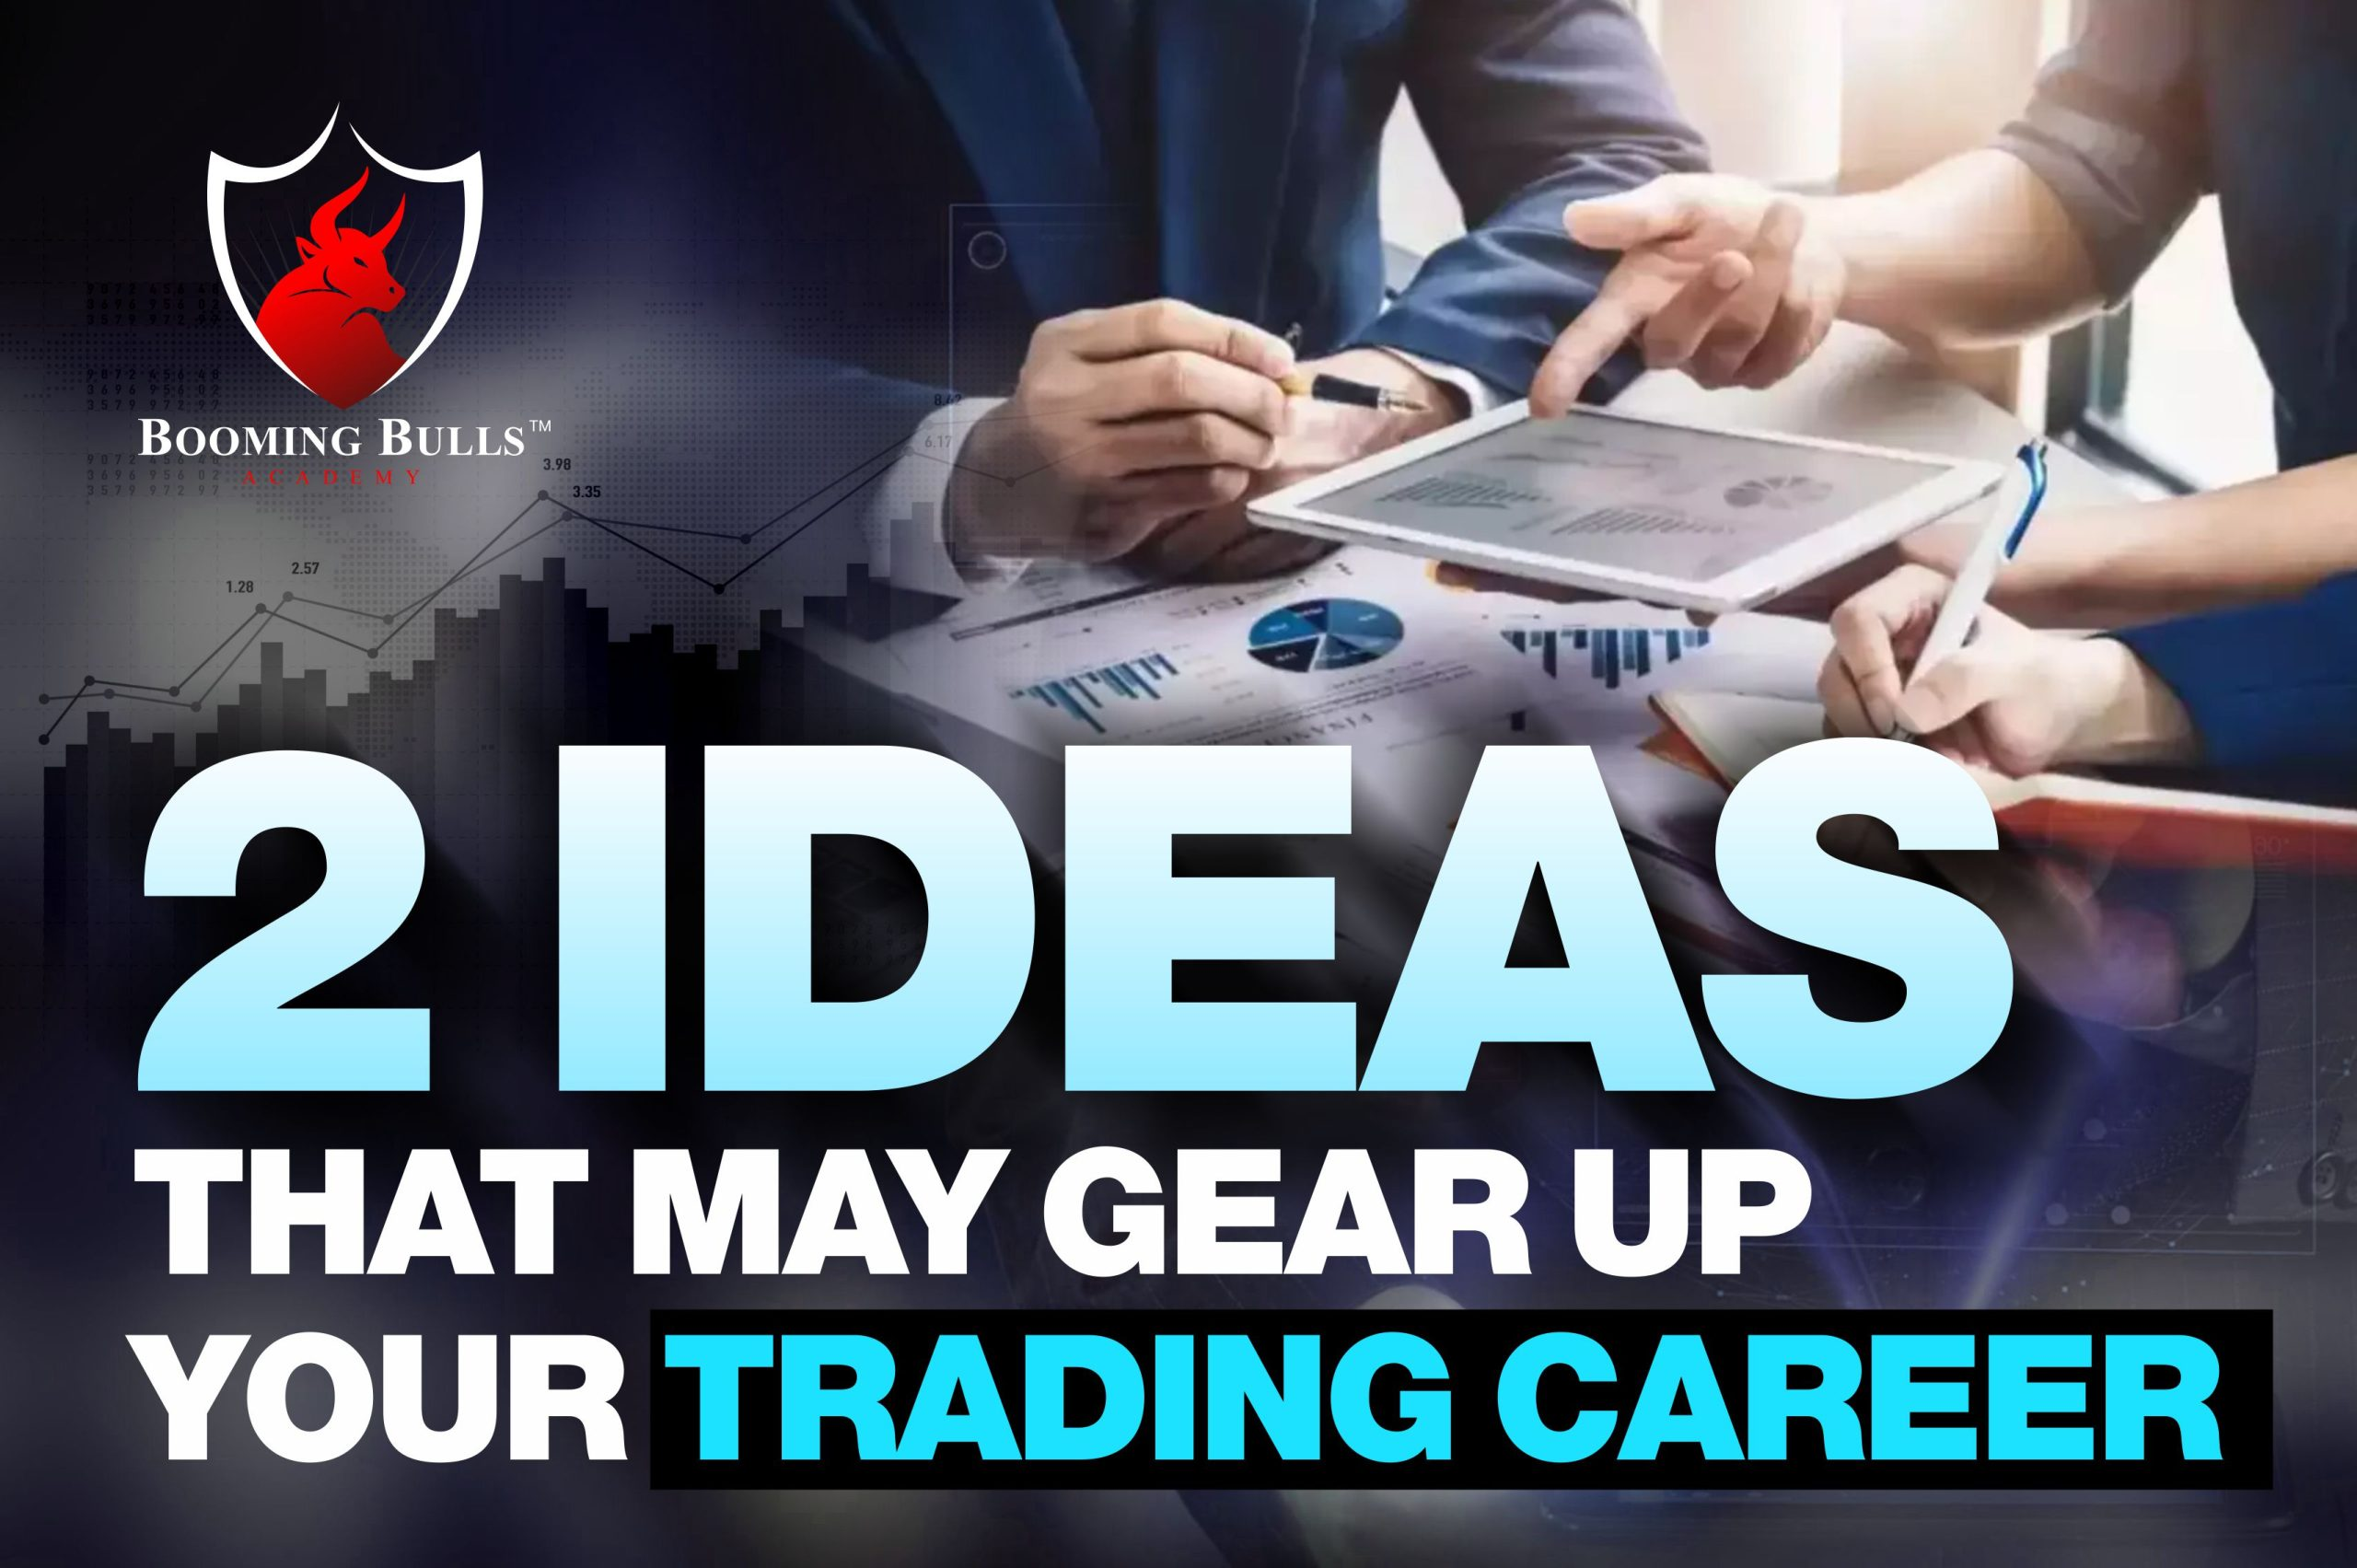 2 Ideas That May Gear Up Your Trading Career